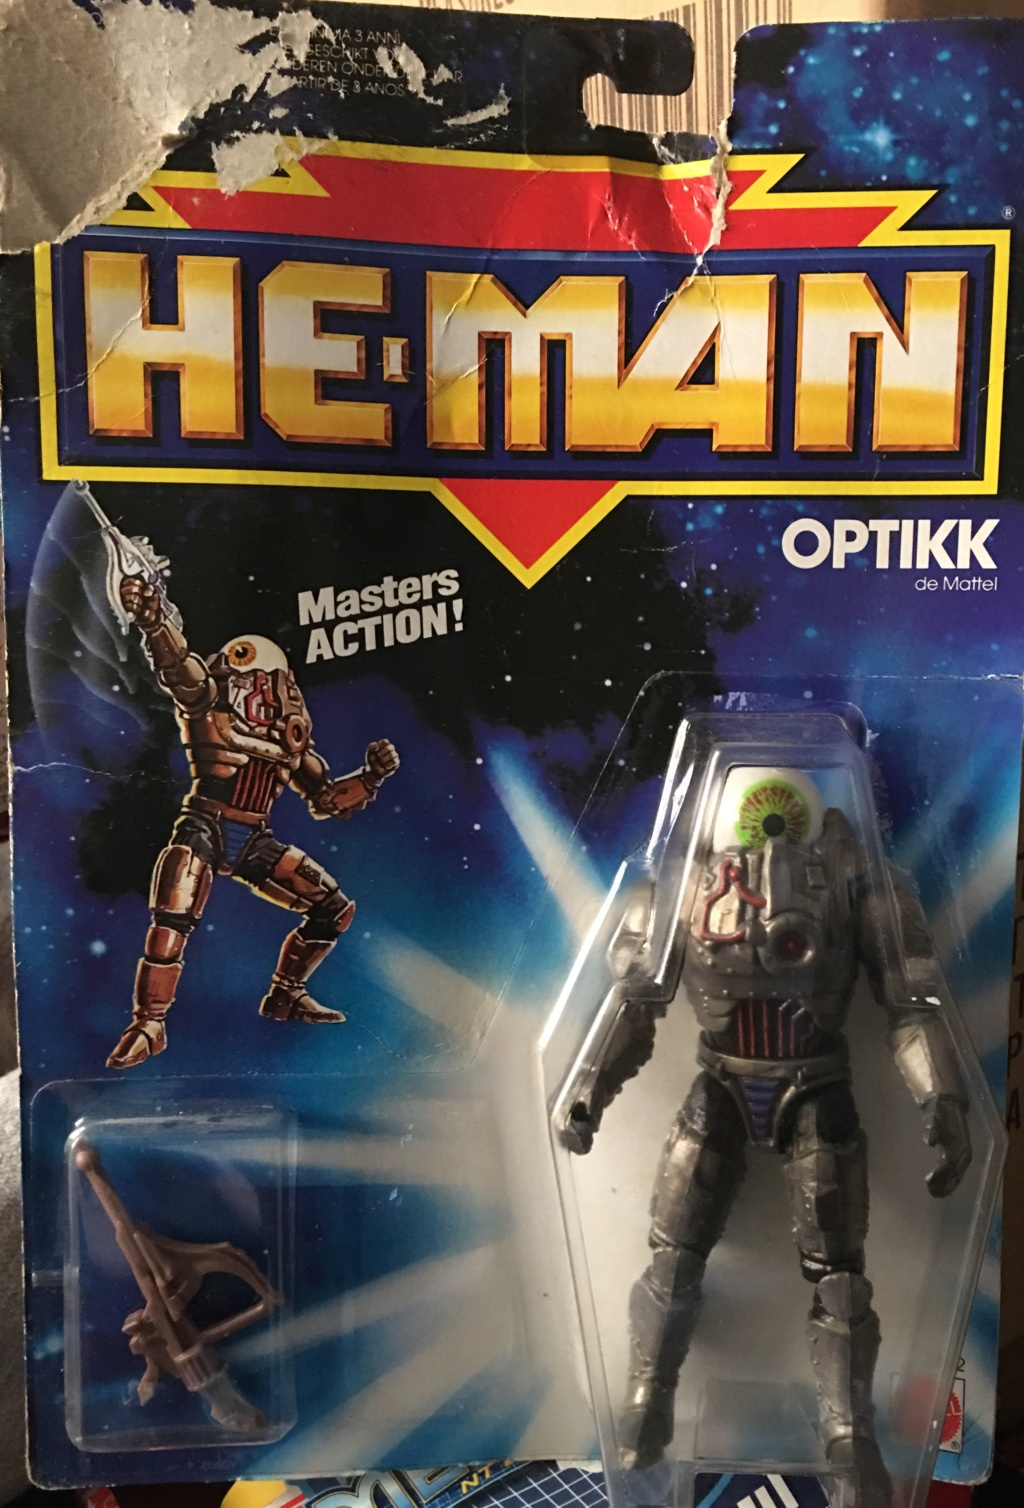 HE-Man Optikk Mattel Img_3919